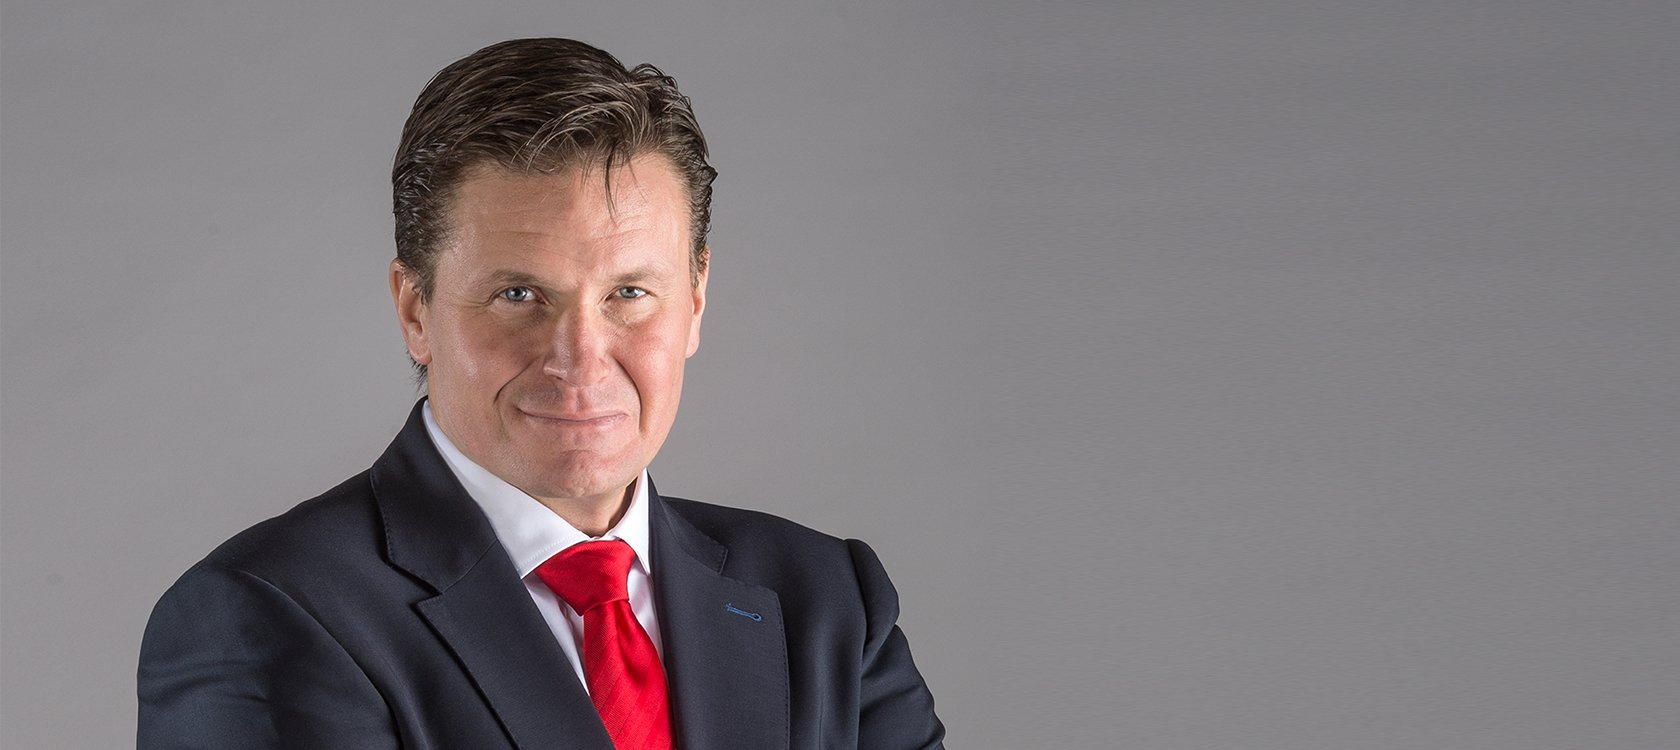 Urs Lehmann has been confirmed as a candidate for the FIS Presidency ©Swiss Ski